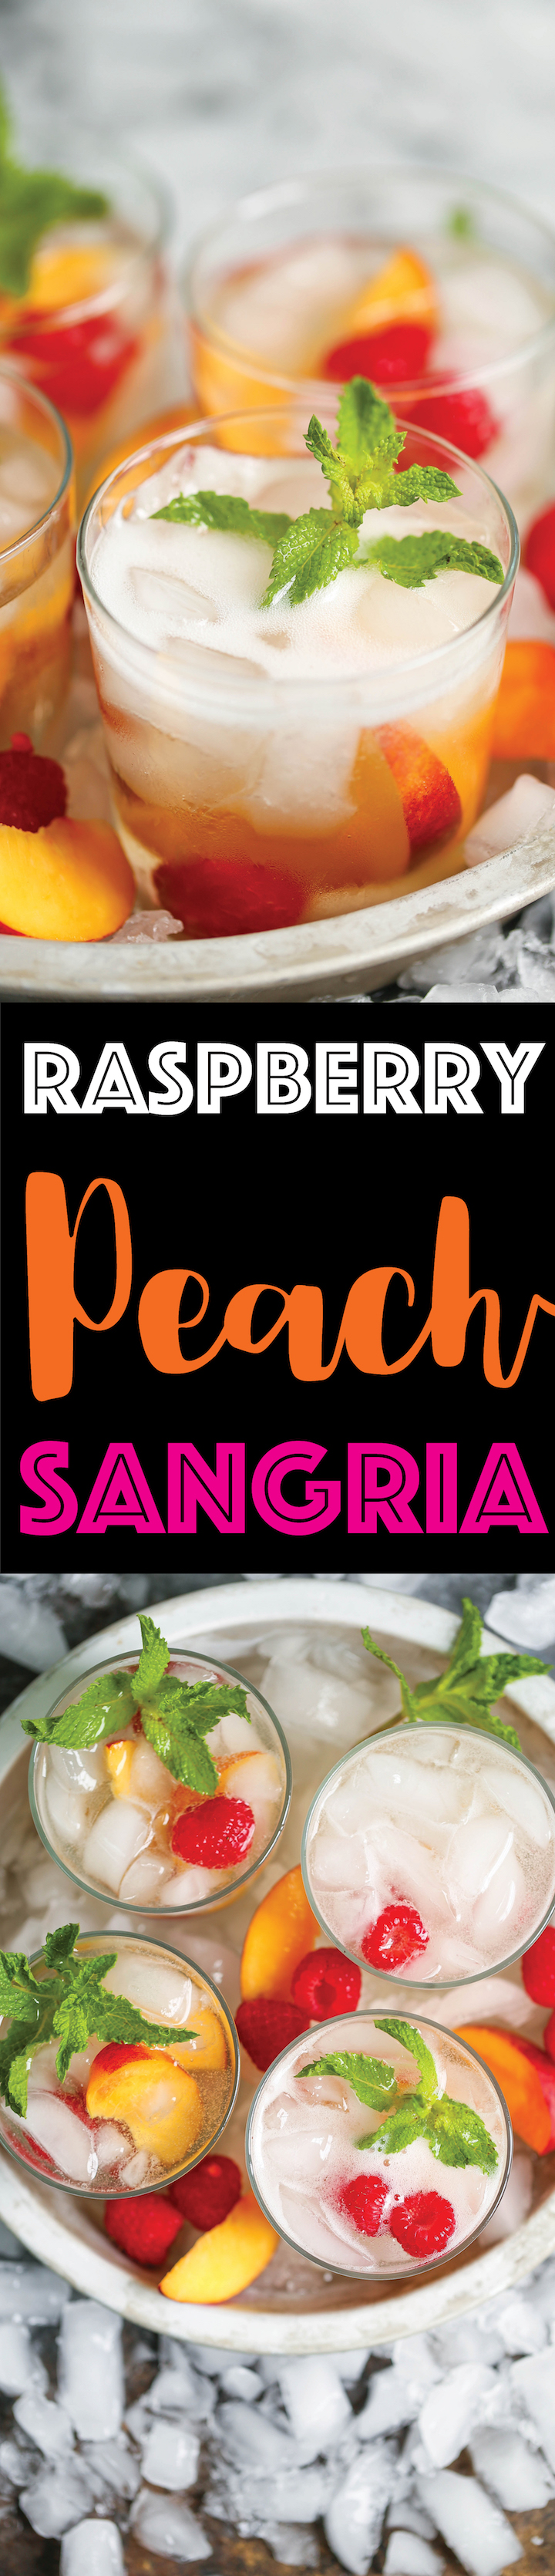 Raspberry Peach Sangria - The perfect make-ahead cocktail for any occasion! Takes literally just 5 min! Let chill and serve with sparkling wine. That's it!